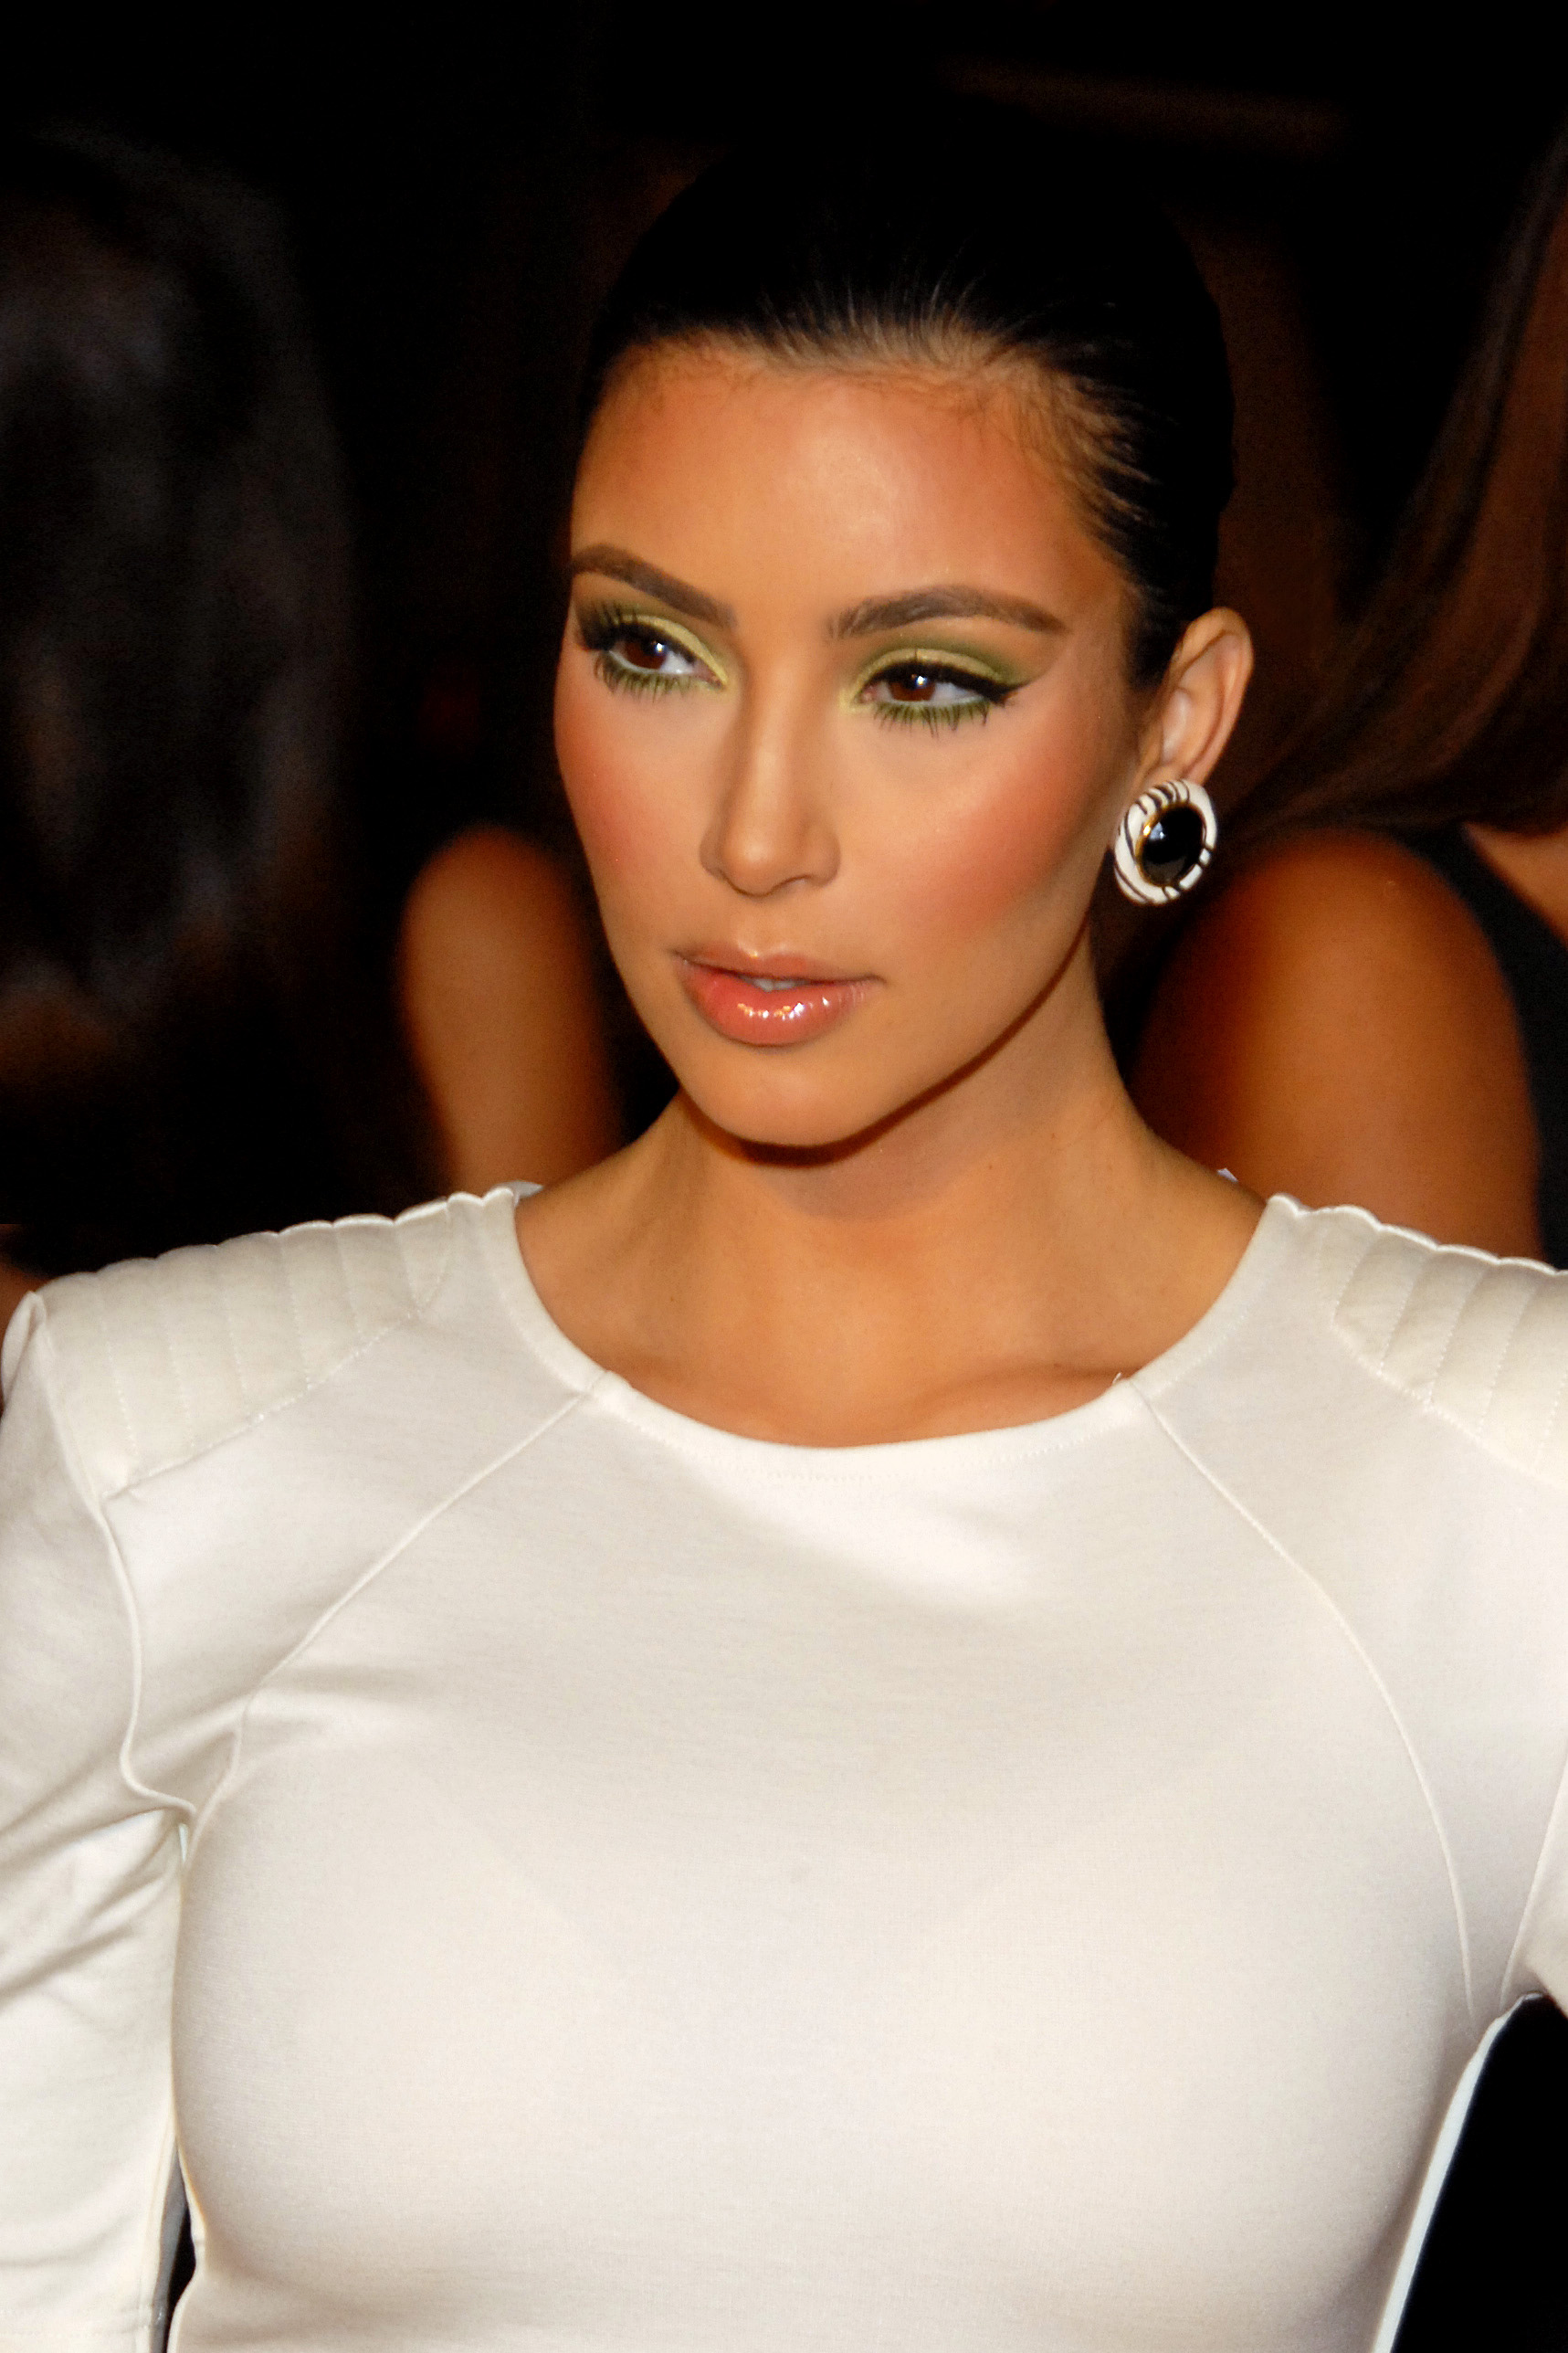 Description Kim Kardashian 2009.jpg